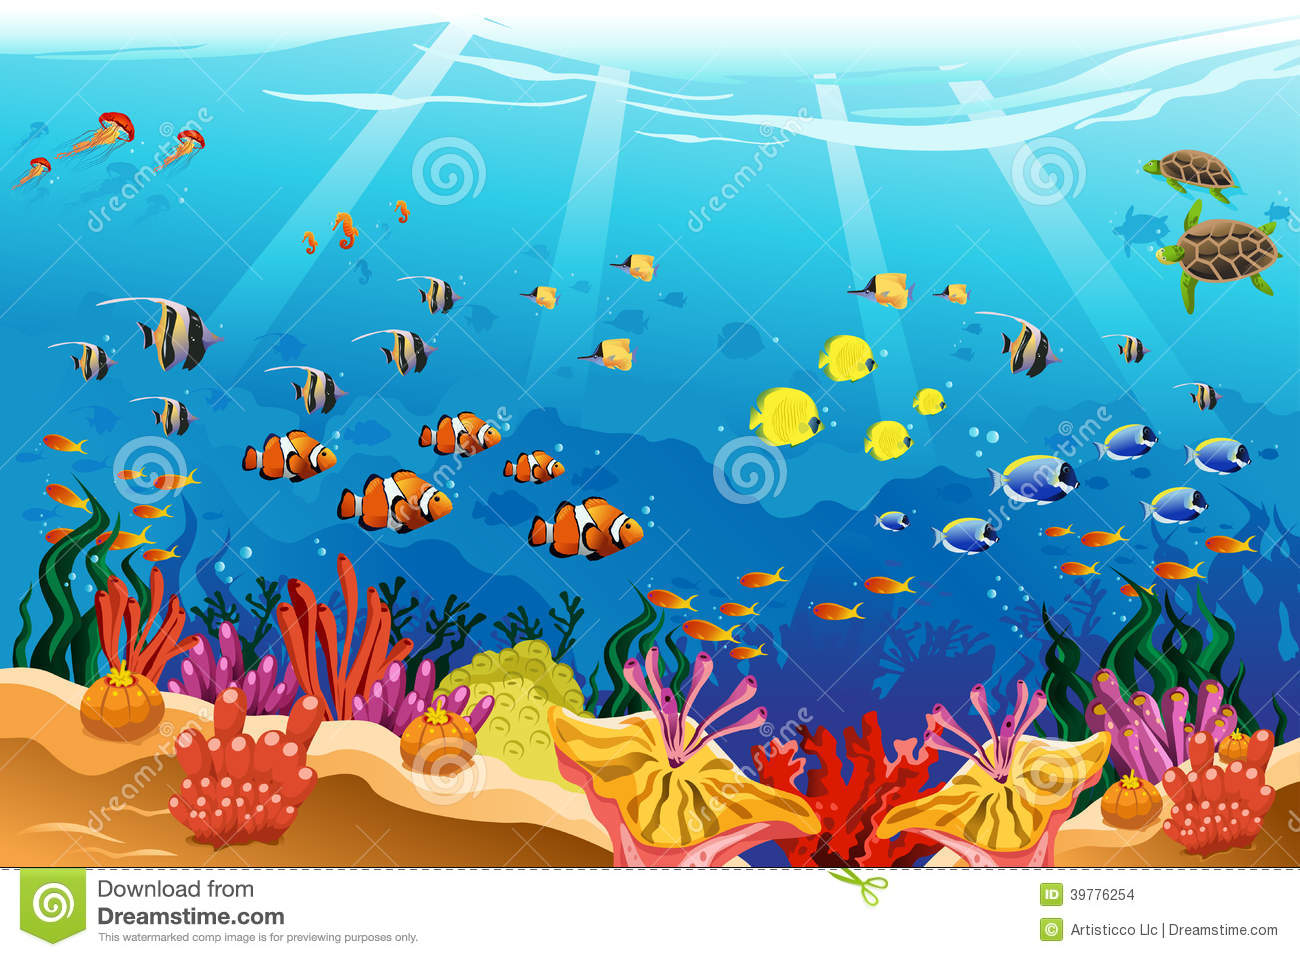 Underwater clipart #4, Download drawings